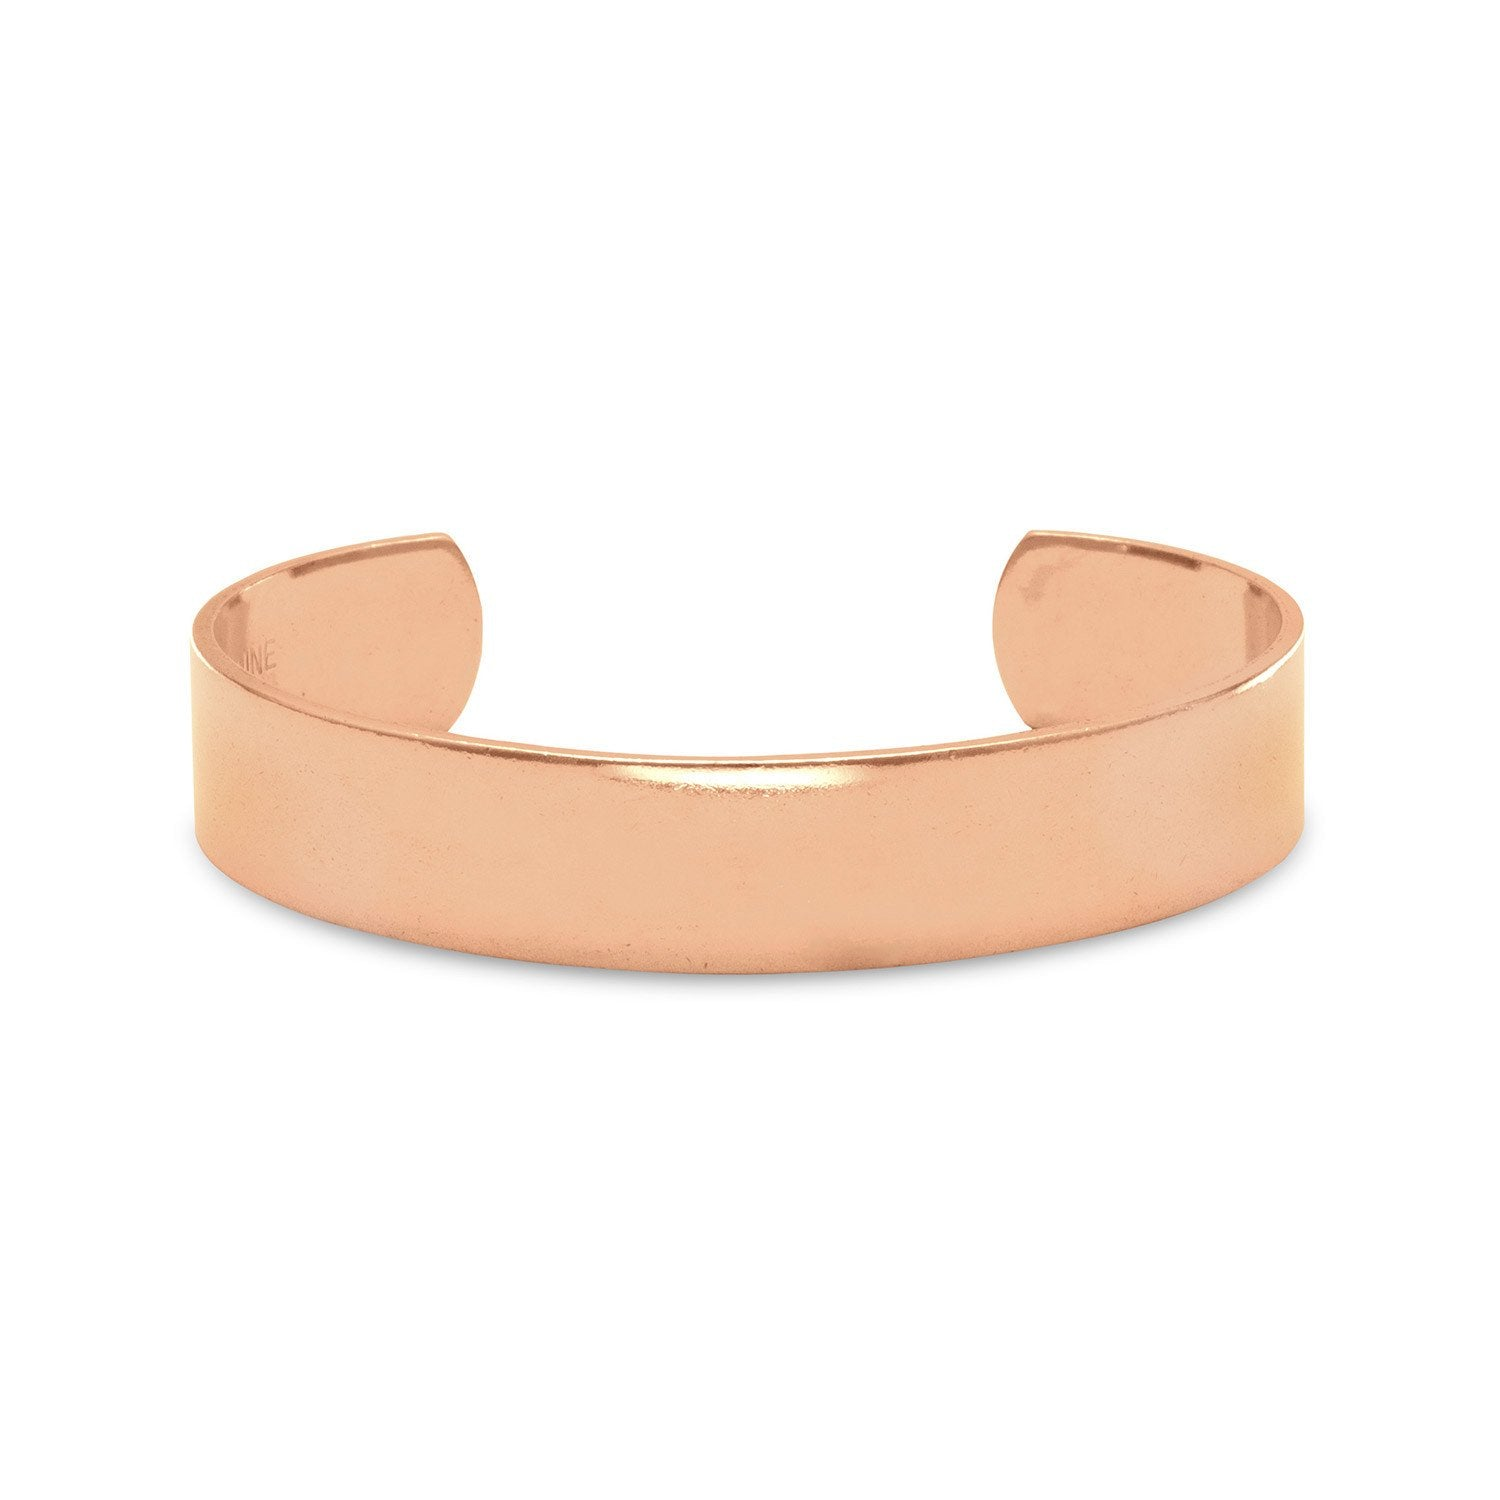 Polished Solid Copper Cuff Bracelet - the-southern-magnolia-too